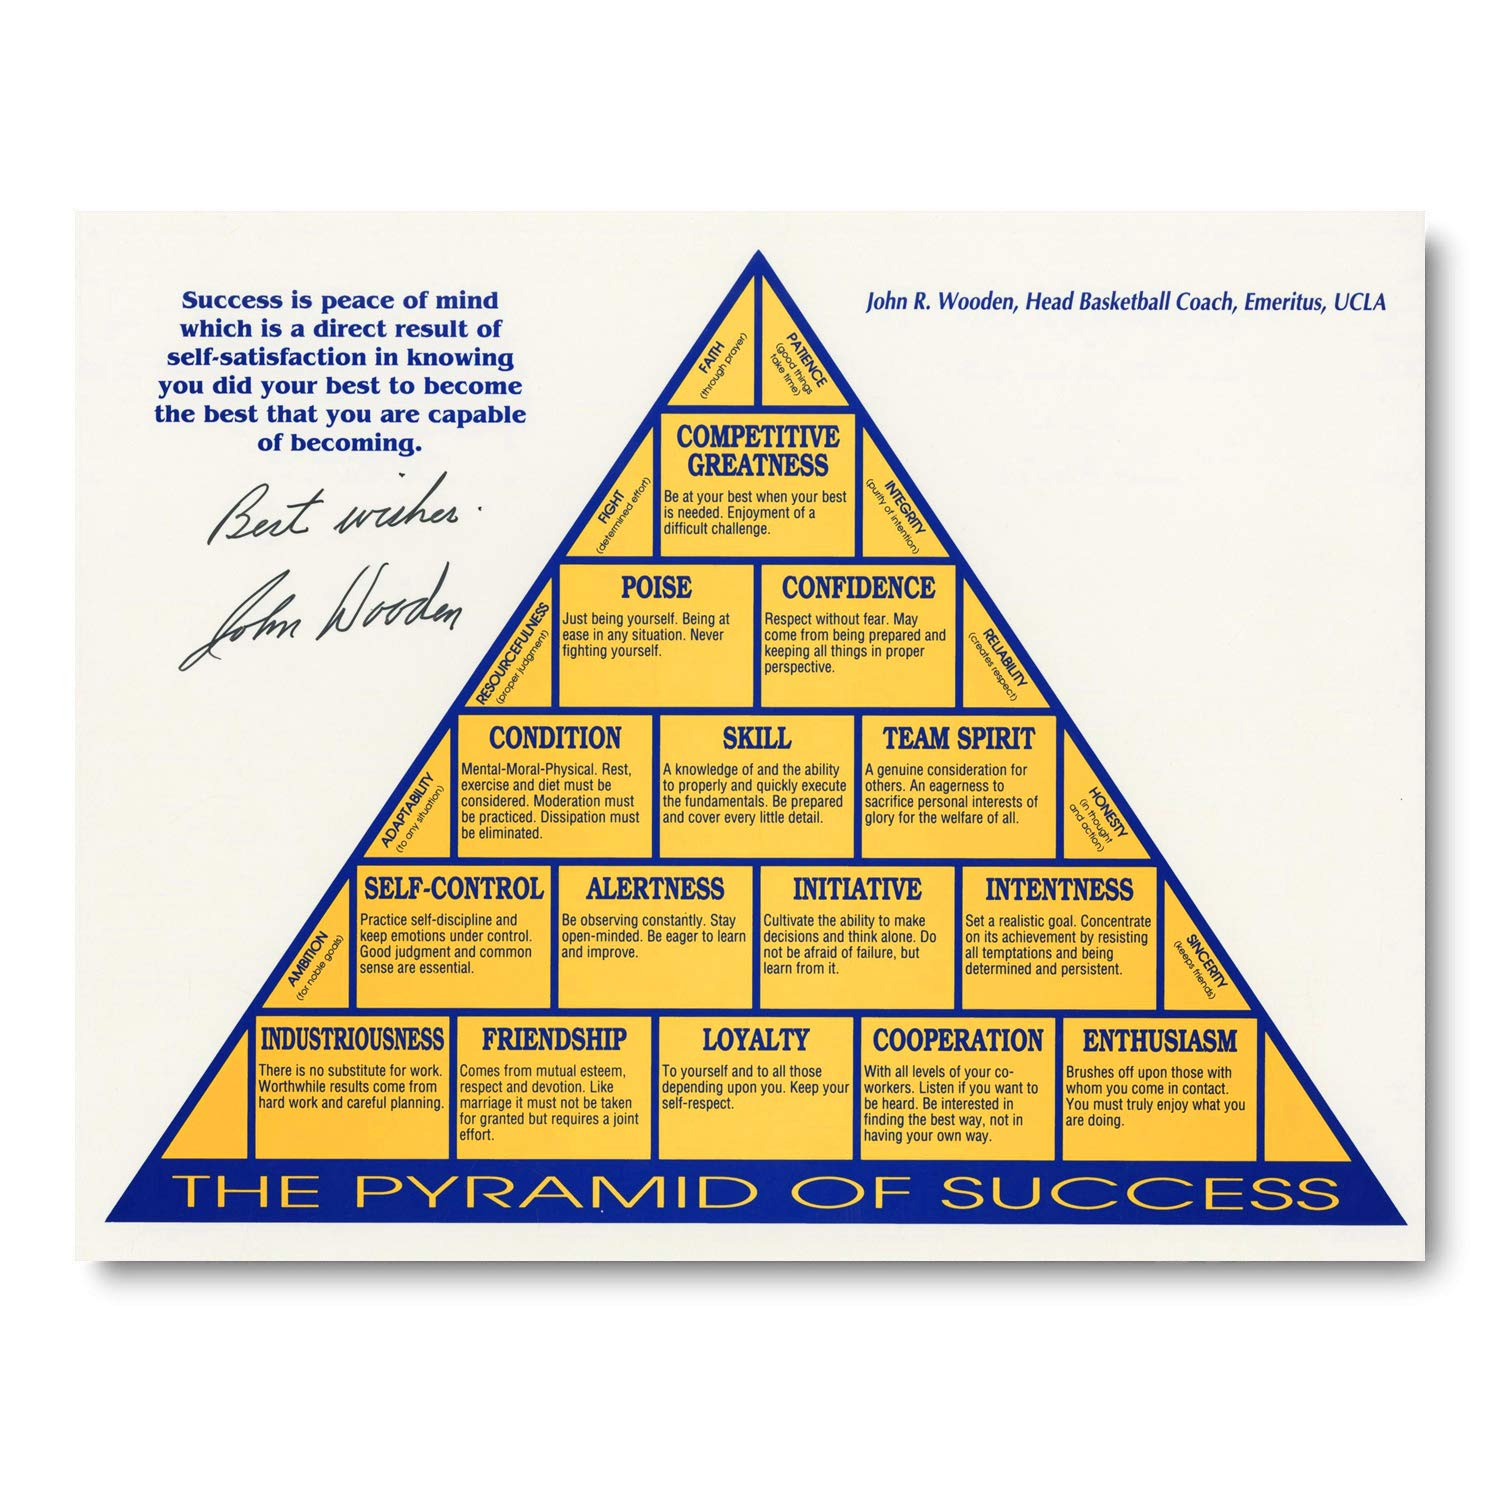 Kaisa John Wooden Autograph Replica Pyramid Of Success Poster Art Print Posters810 Inches Unframed Canvas Print